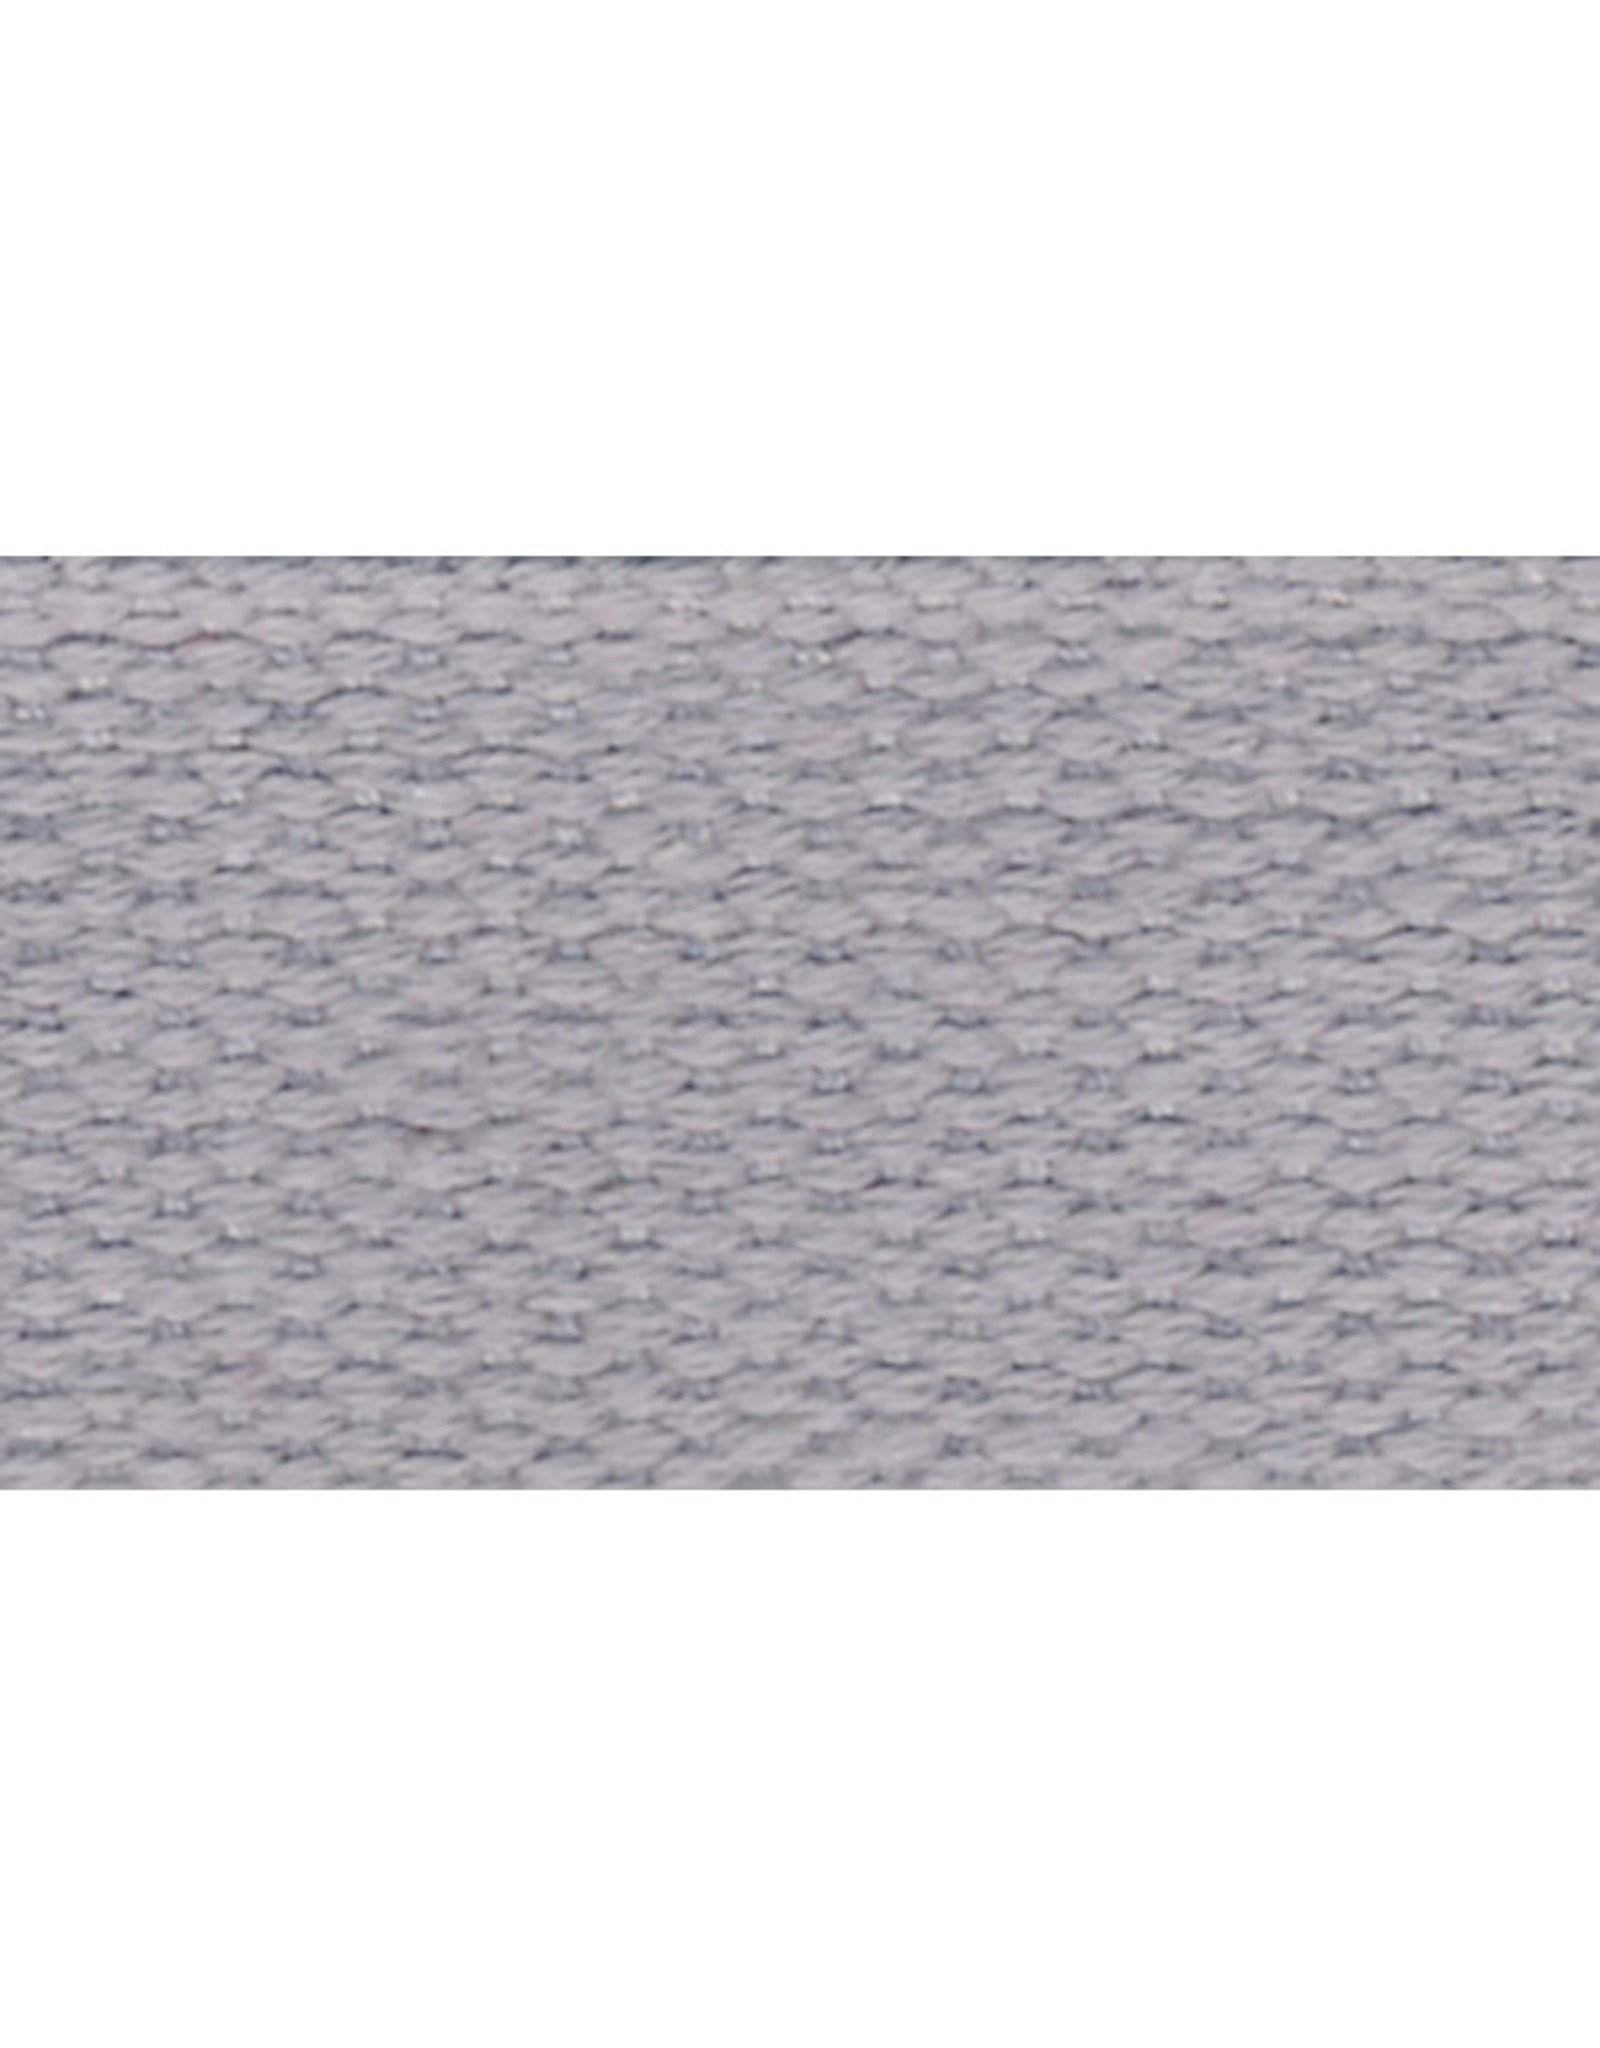 United Notions Light Grey Cotton Webbing Strapping by the Yard, 1 inch wide